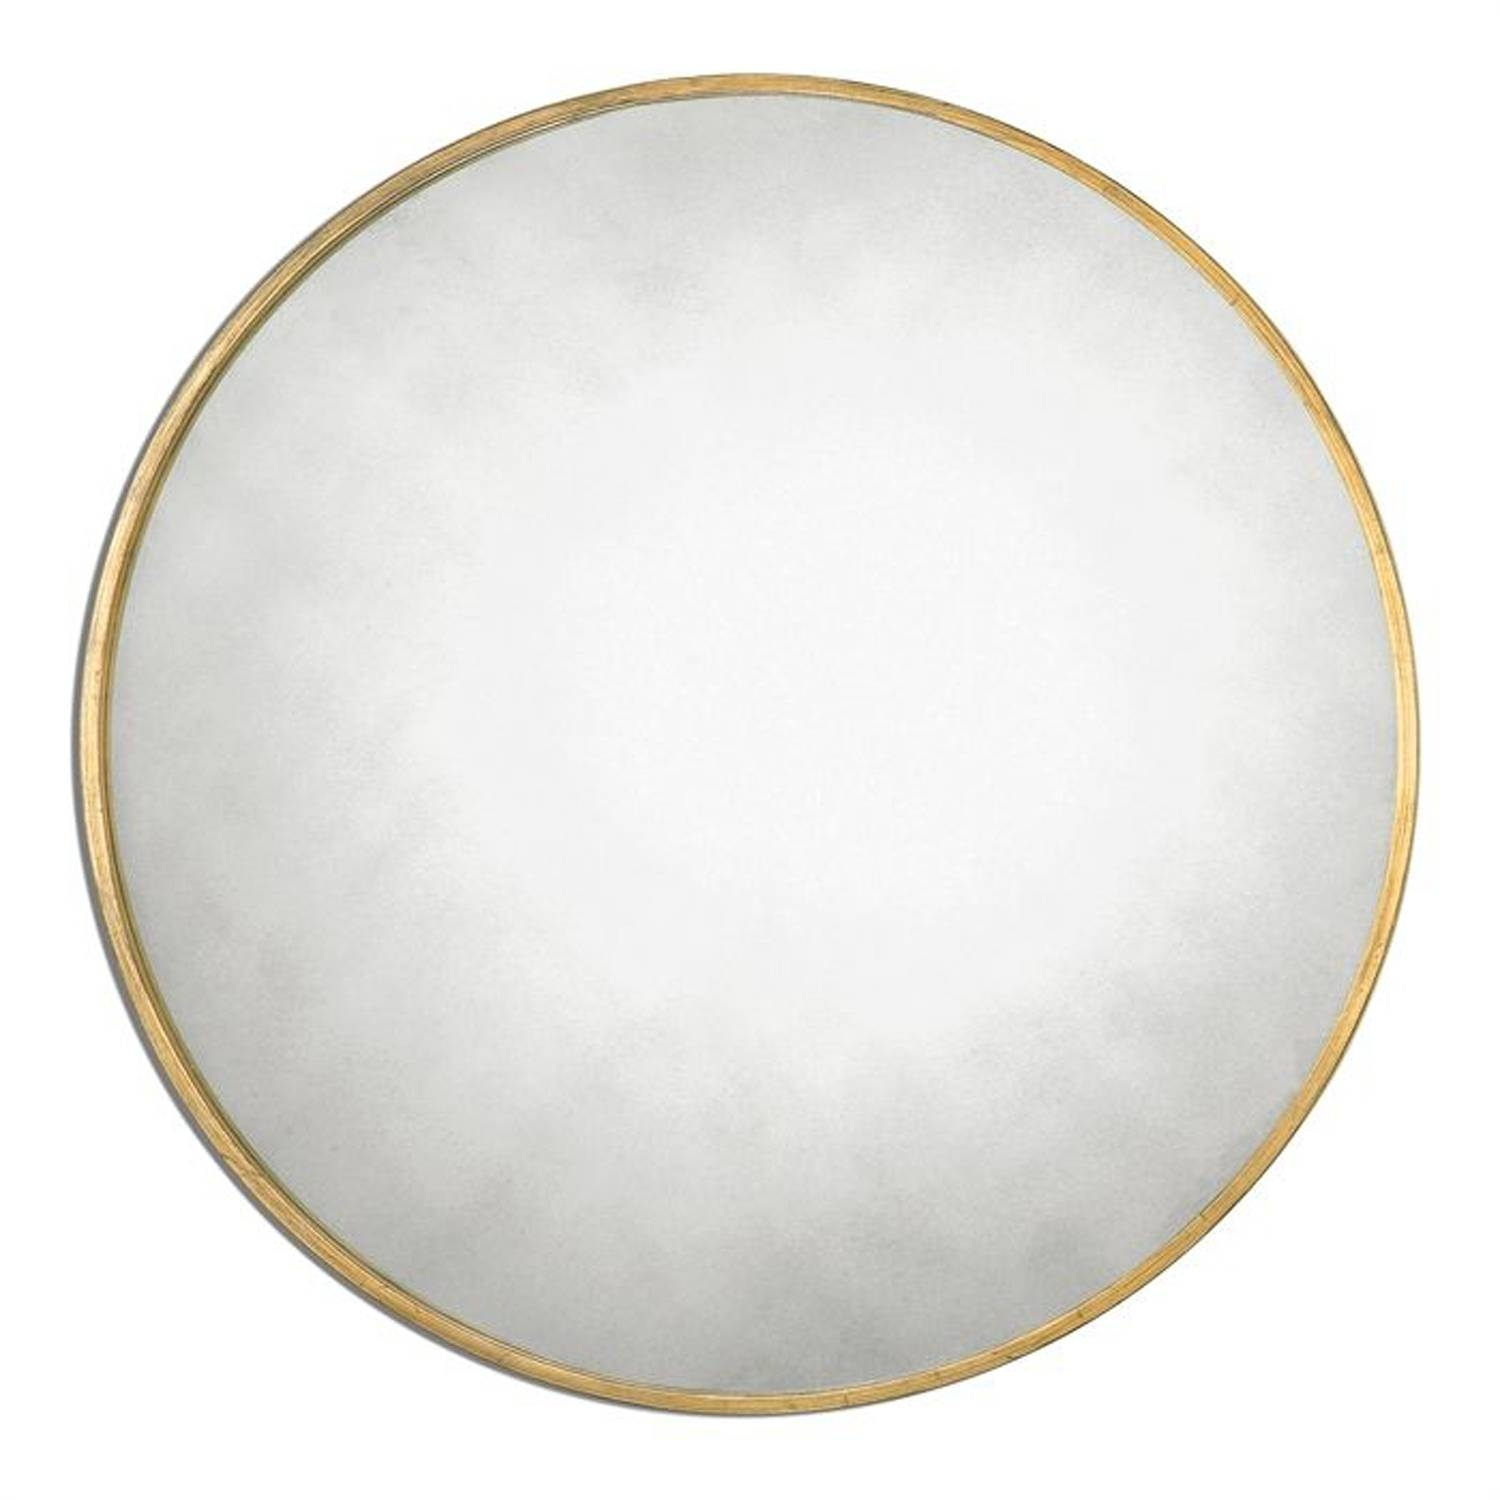 Wall Mirrors, Bathroom Mirrors | Bellacor regarding Black Circle Mirrors (Image 25 of 25)